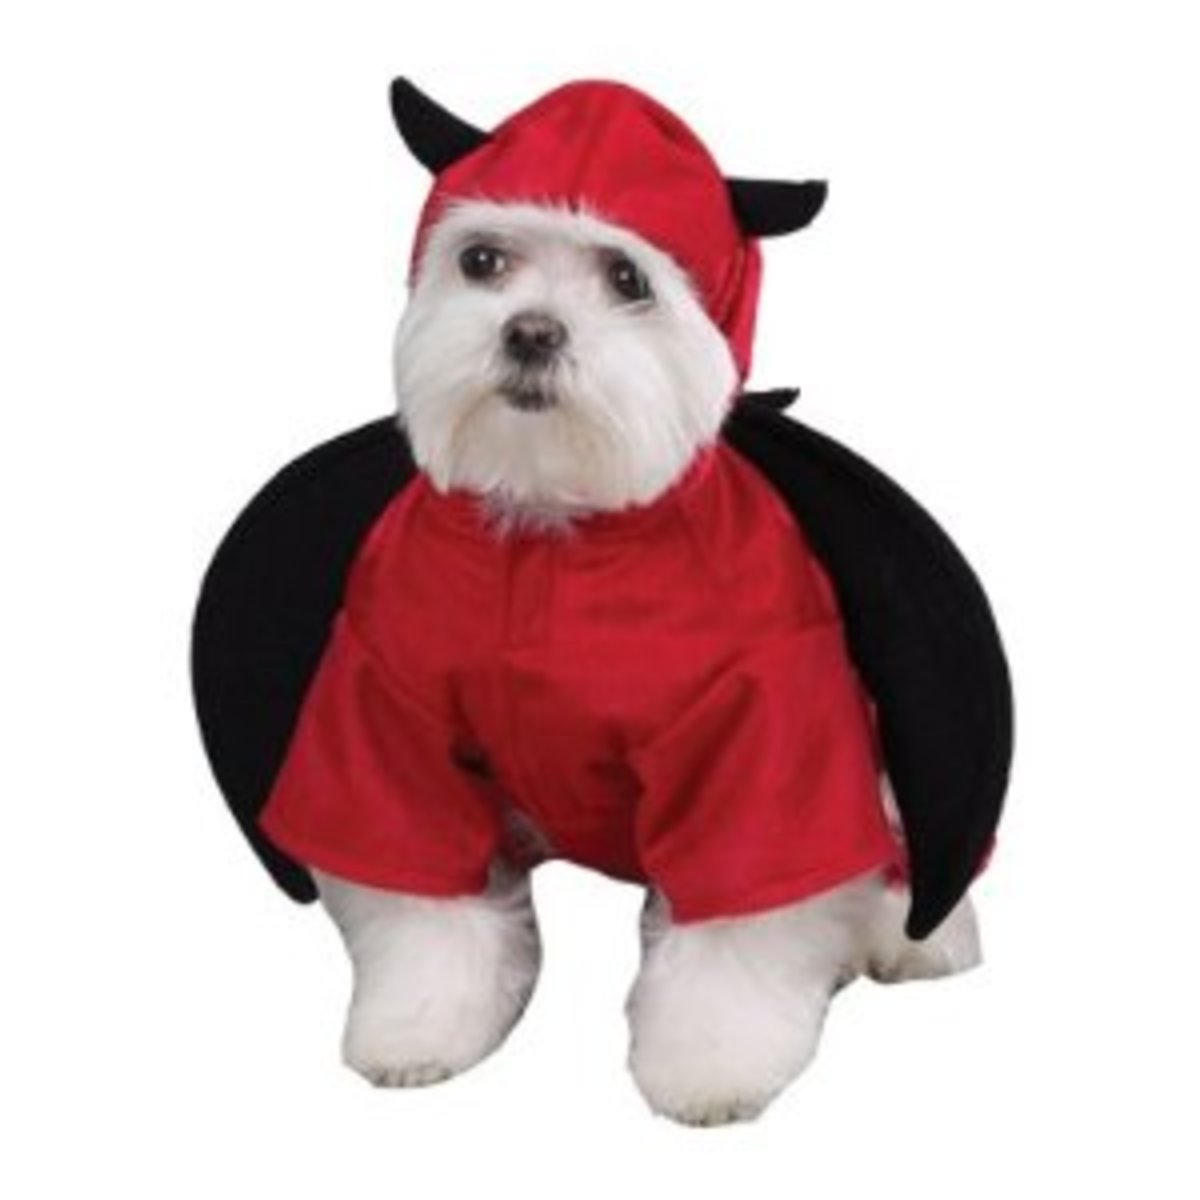 Your pup is bound to cause some trouble in this Halloween costume.